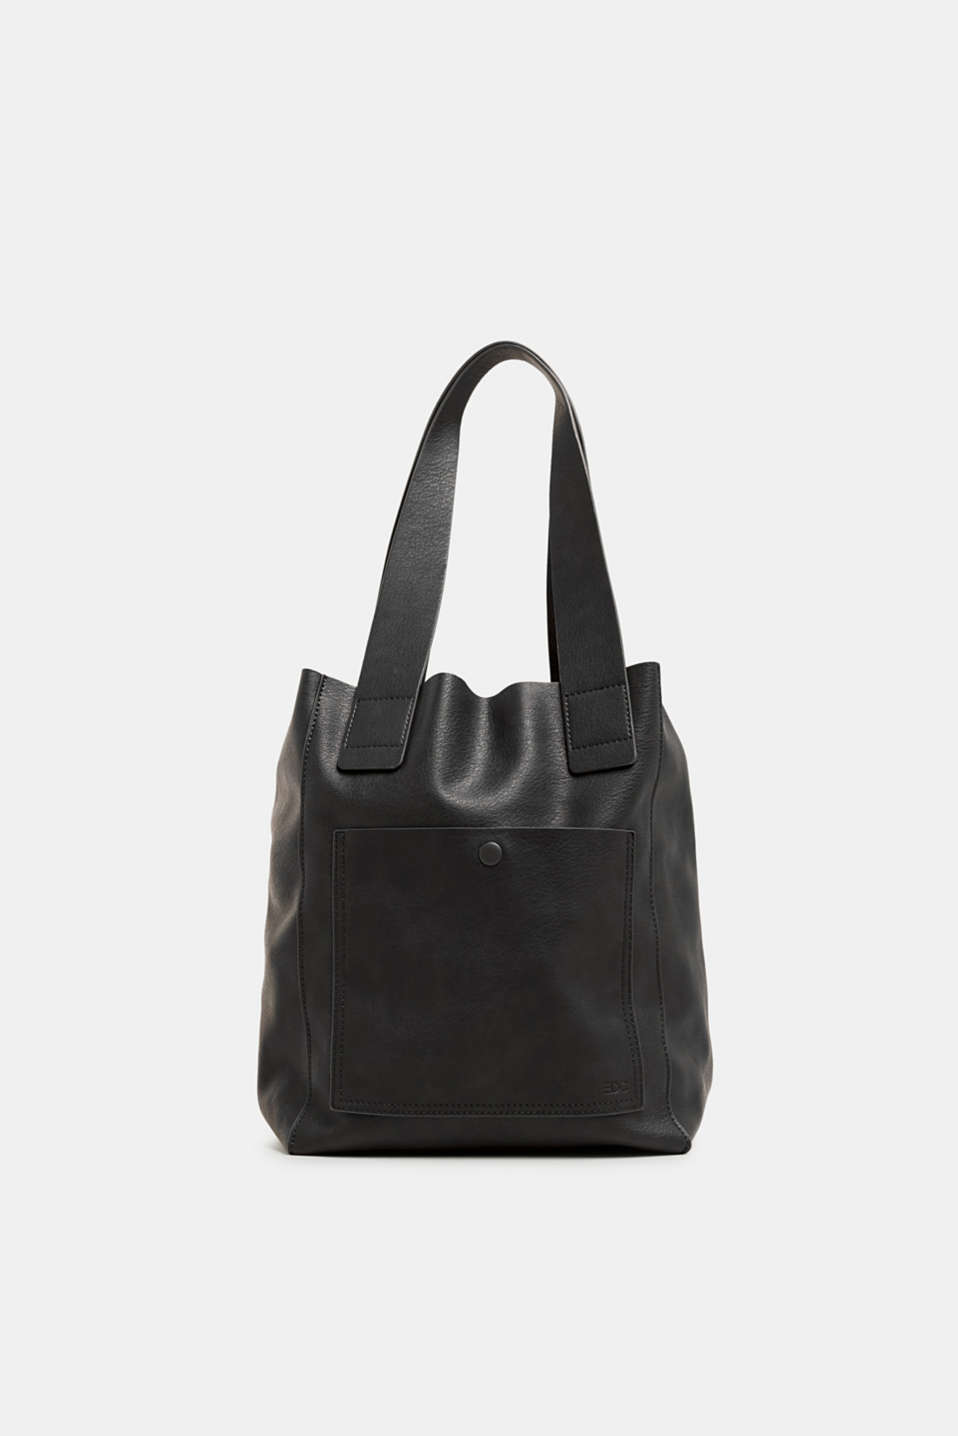 edc - Tote Bag in Leder-Optik